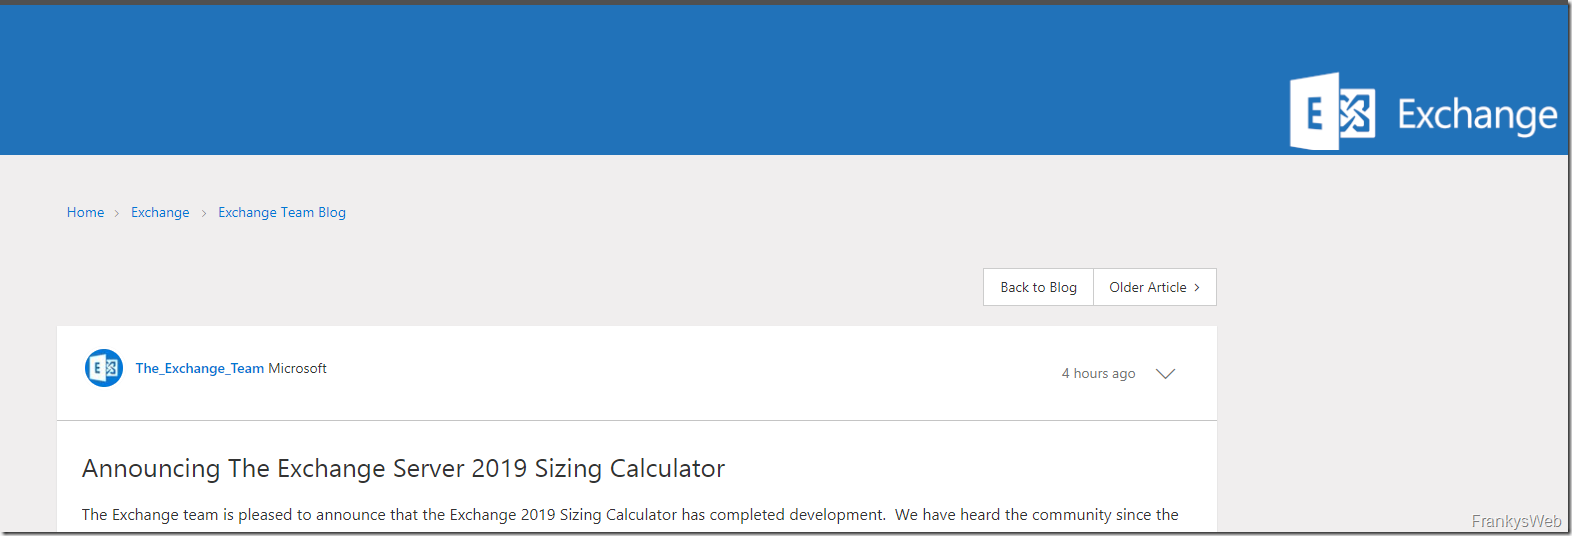 Exchange 2019 Sizing Calculator angekündigt